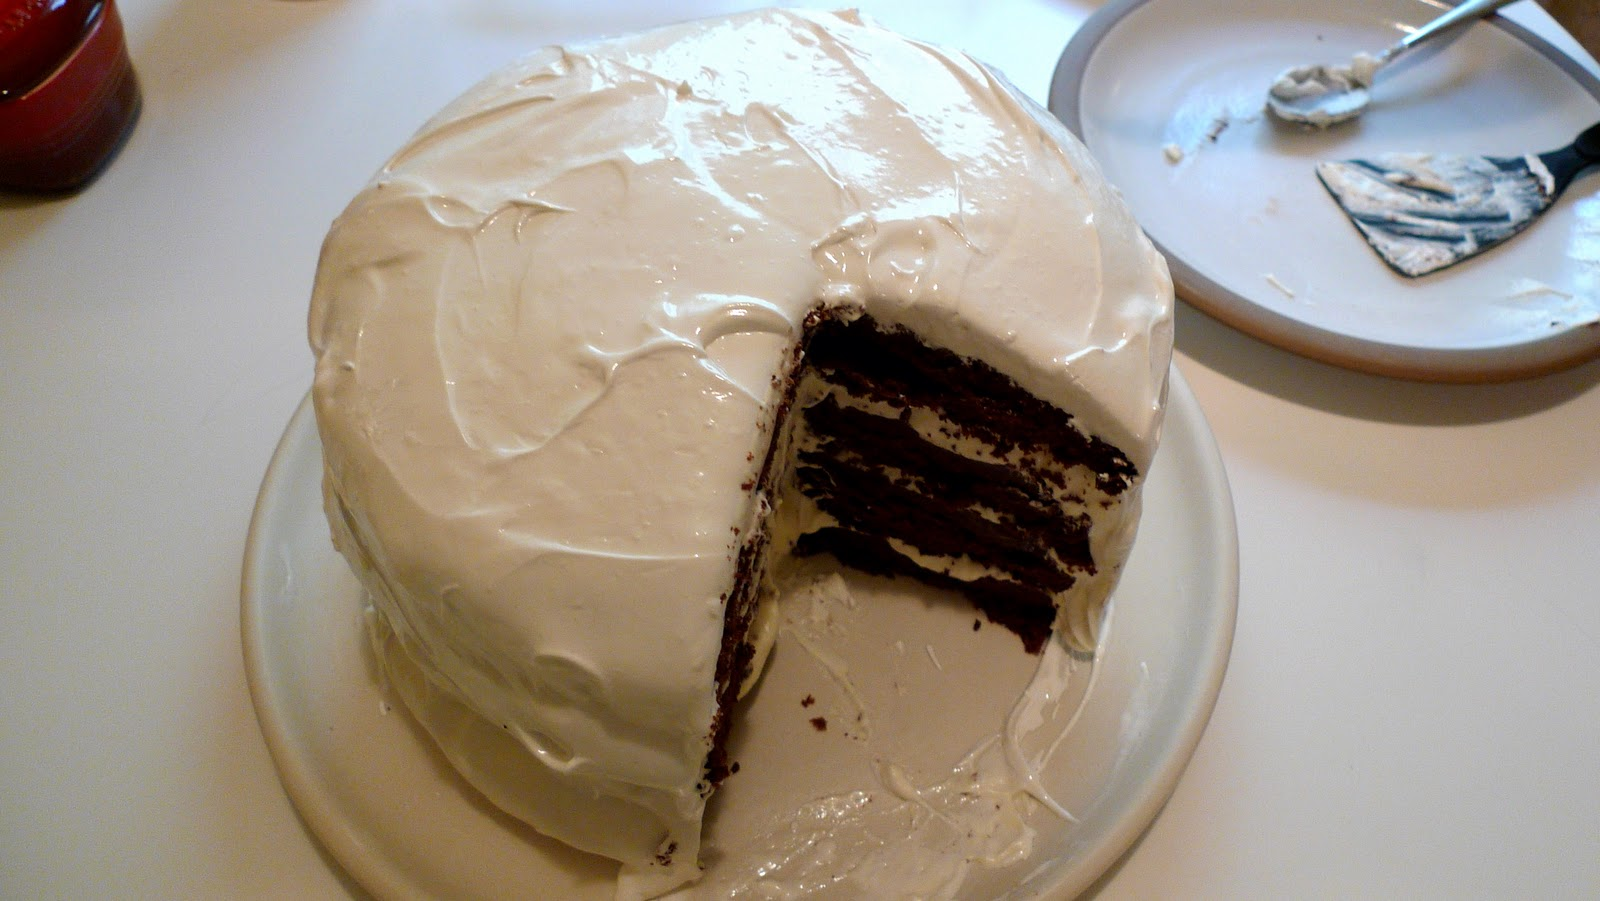 ... Appétempt: Take Two: Devil's Food Layer Cake with Peppermint Frosting